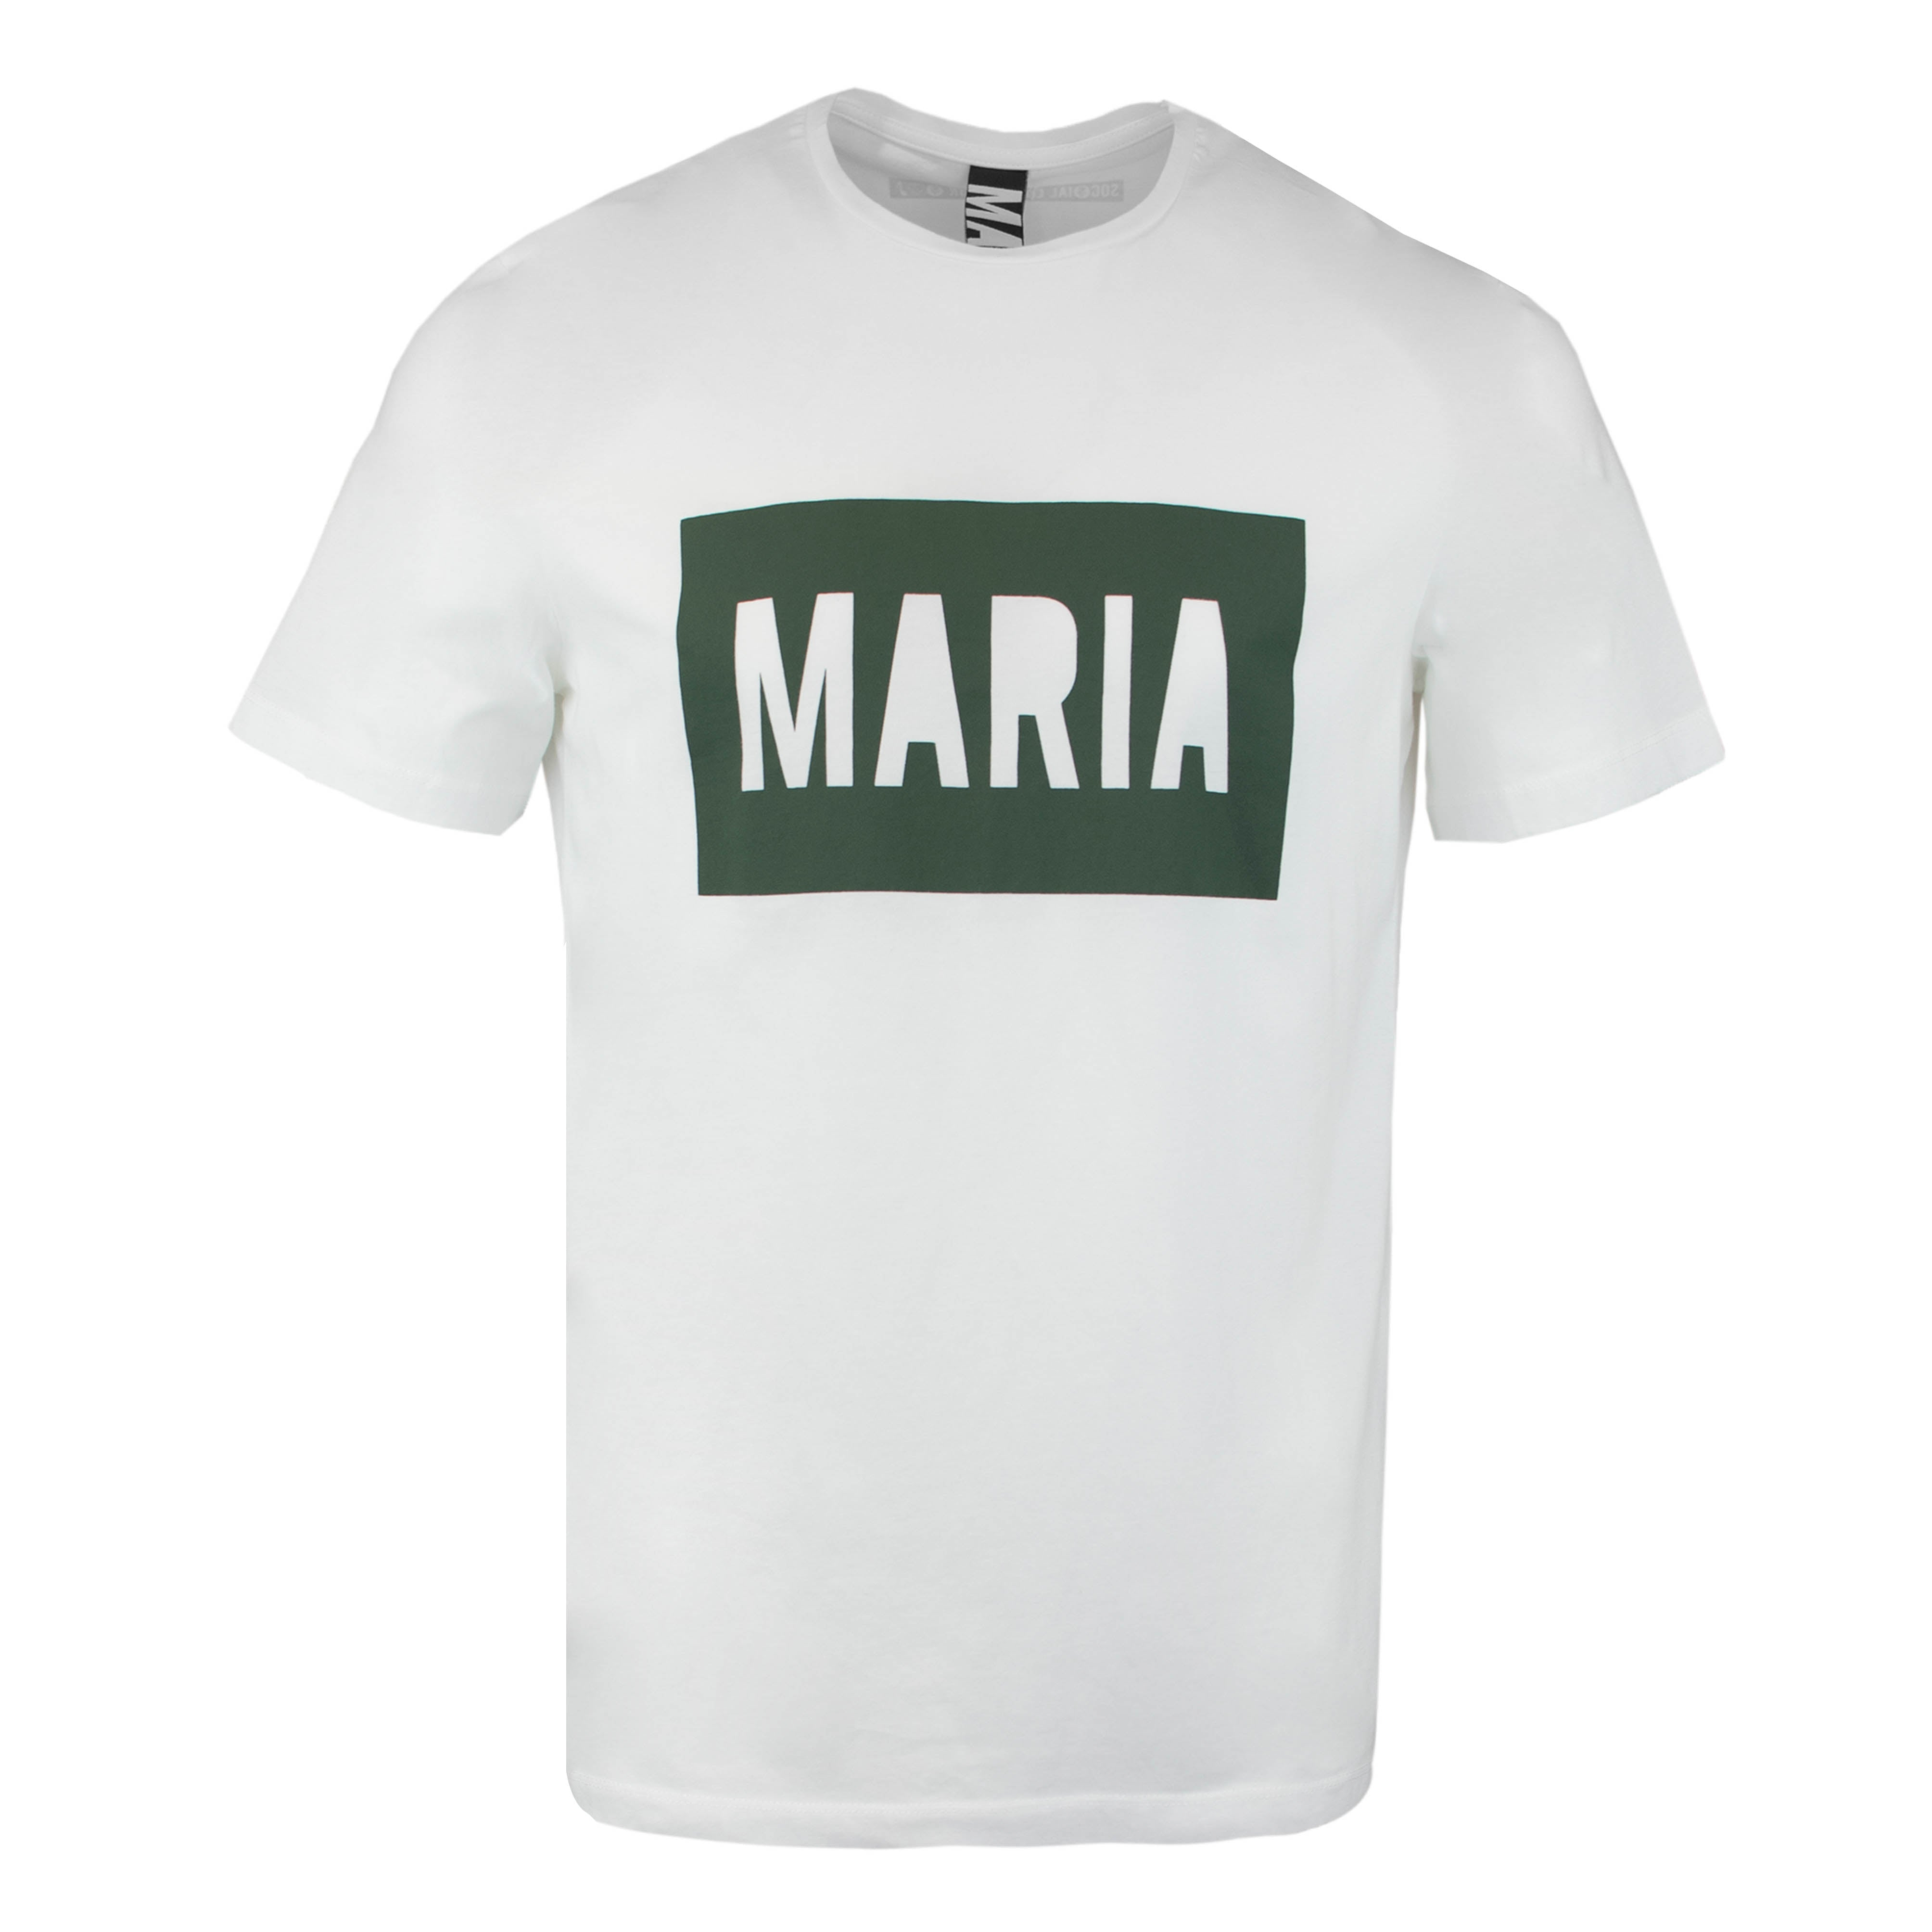 T-Shirt White Box Green